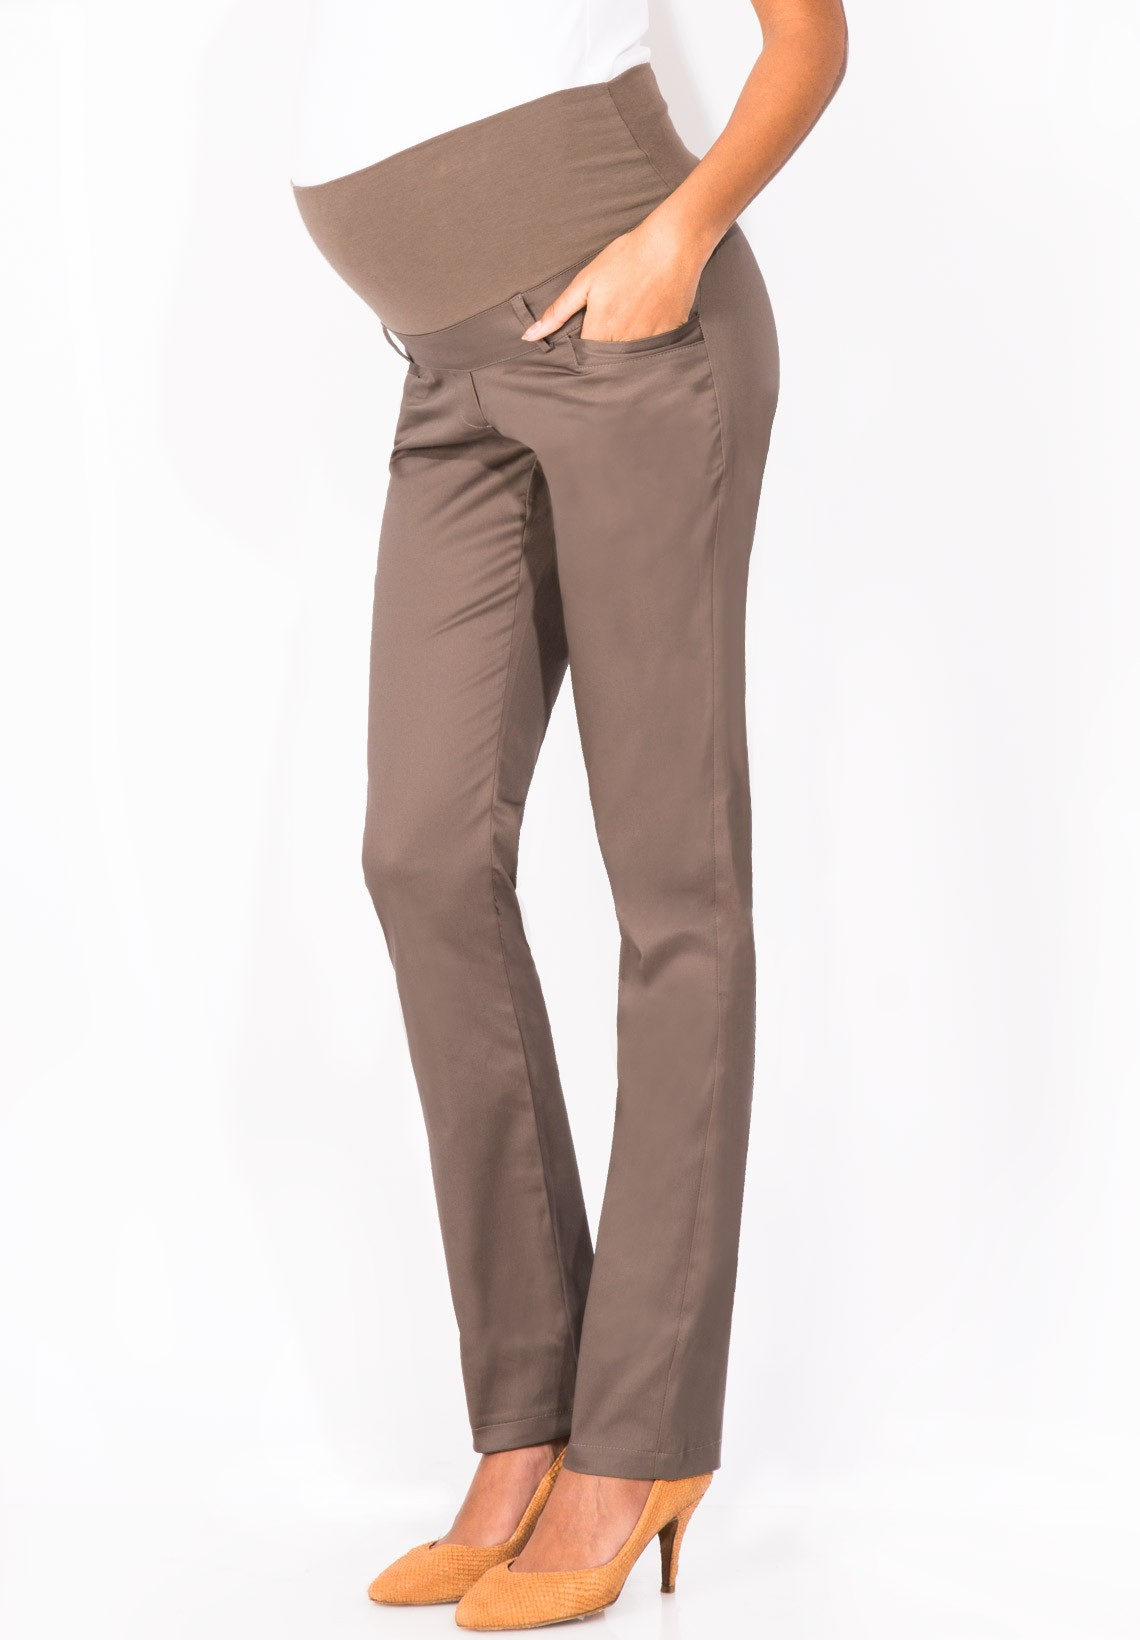 slimy - maternity pants - envie de fraise ... perhjwm